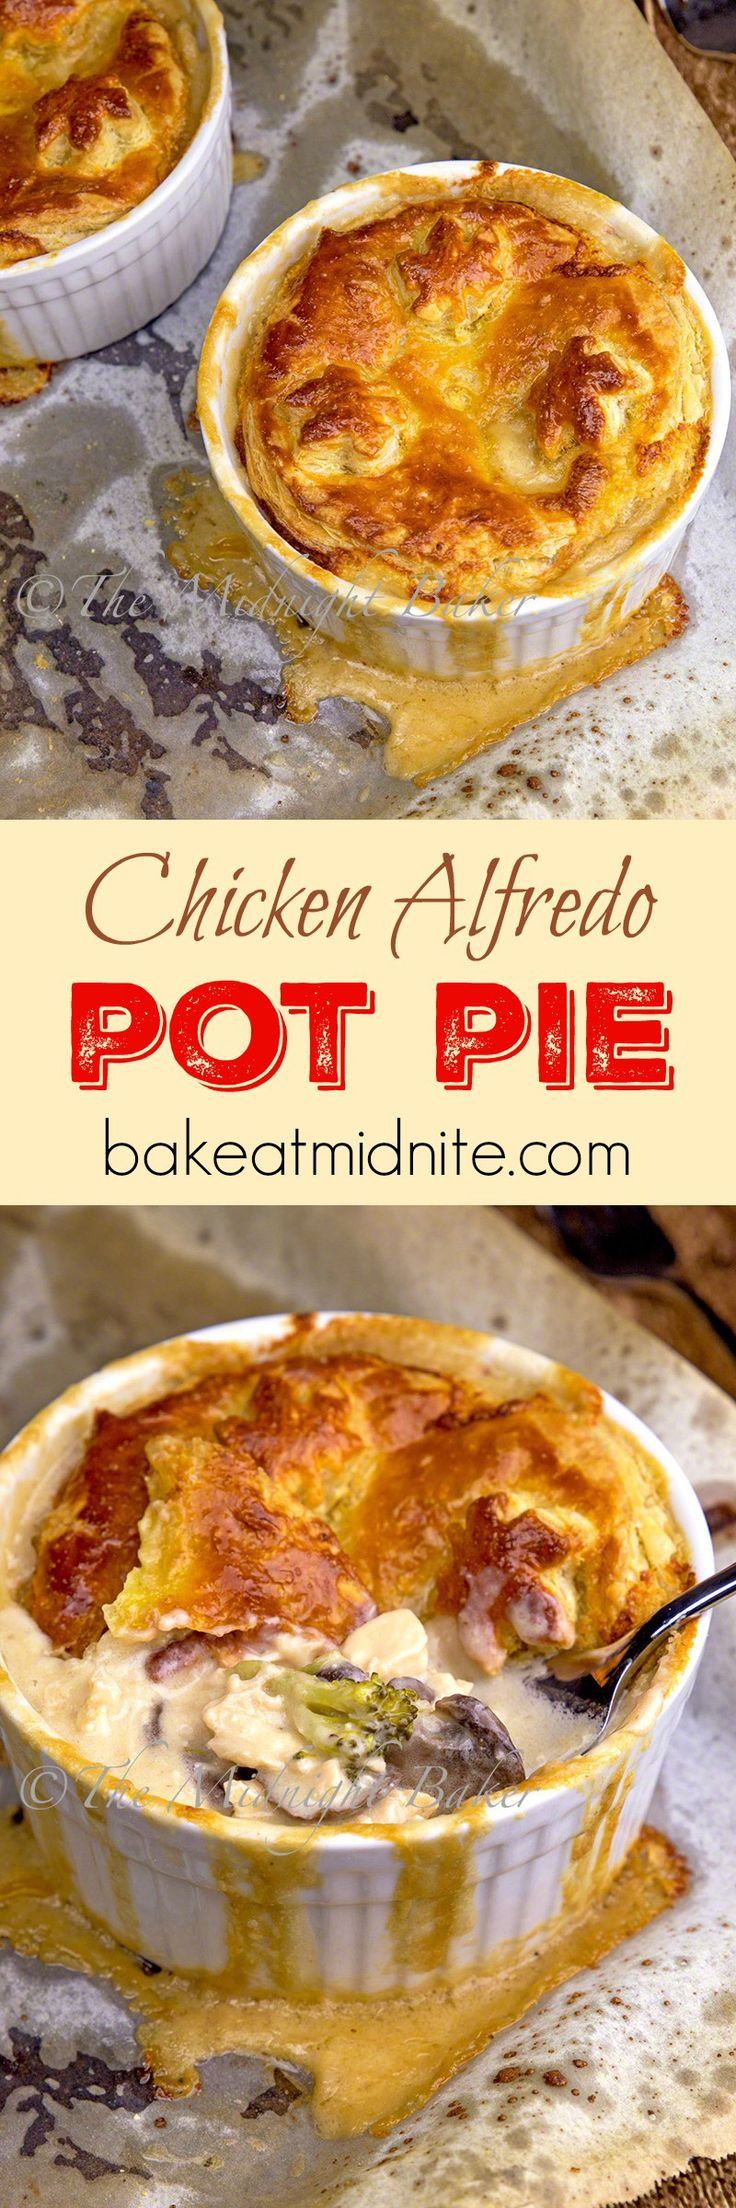 Chicken Alfredo Pot Pie--delicious way to use leftover chicken and puff pastry: